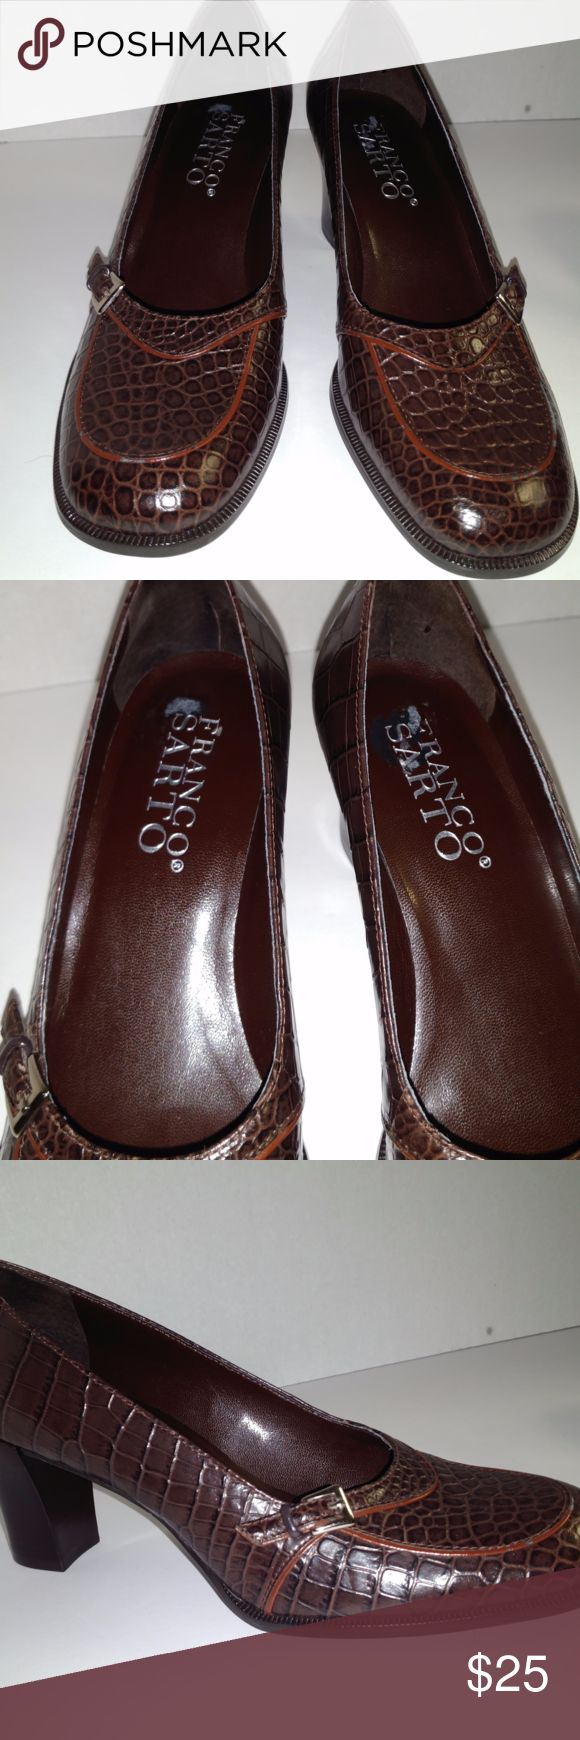 Franco Sarto Embossed Brown Leather Pumps- Size 6M Franco Sarto Embossed Brown Leather Heels  Style:Pumps	 Material: Leather Upper/Manmade Sole Brand: Franco Sarto Fastening: Slip On US Shoe Size (Women's):	6	 Width:	Medium (B, M)	 Heel Height: High (3 in. and Up) Heel Type: Stacked Color: Brown Pattern: Faux Embossed Croc Franco Sarto Shoes Heels